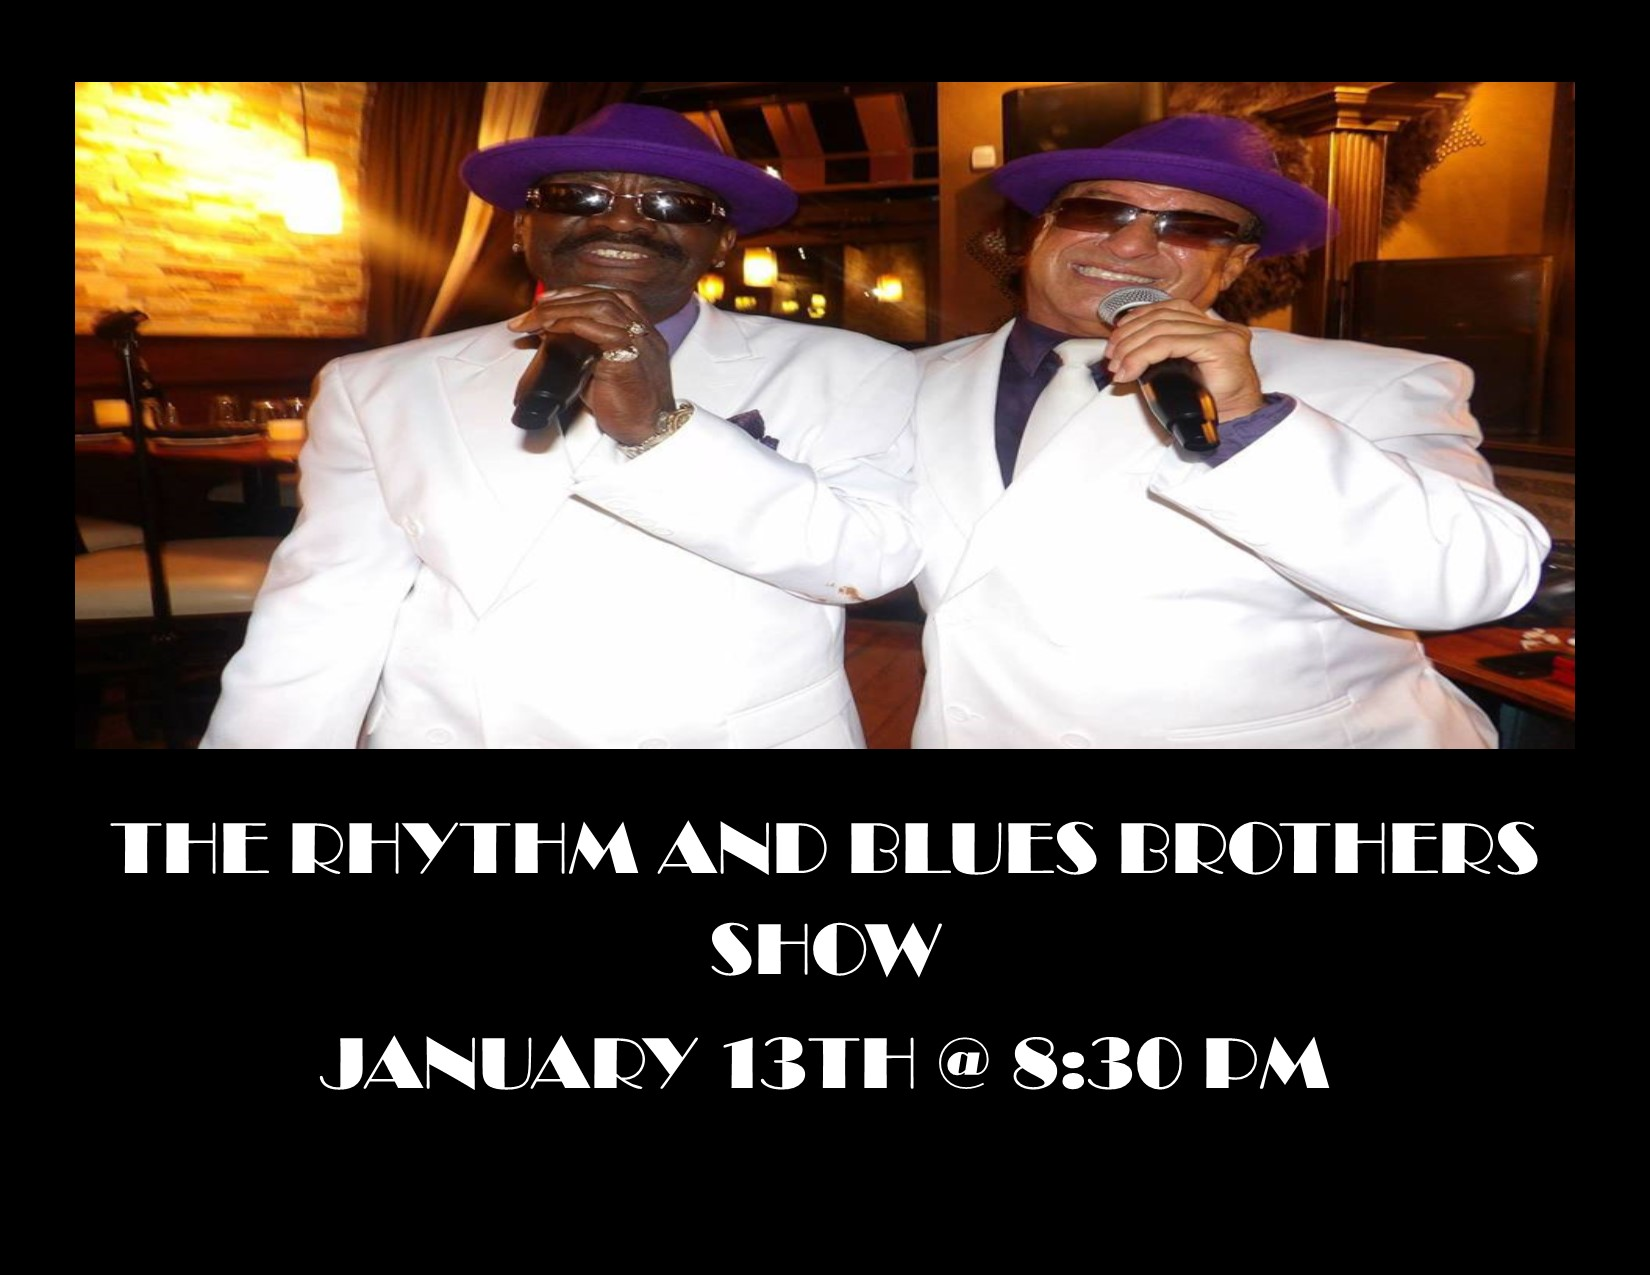 rythm and blues brothers show